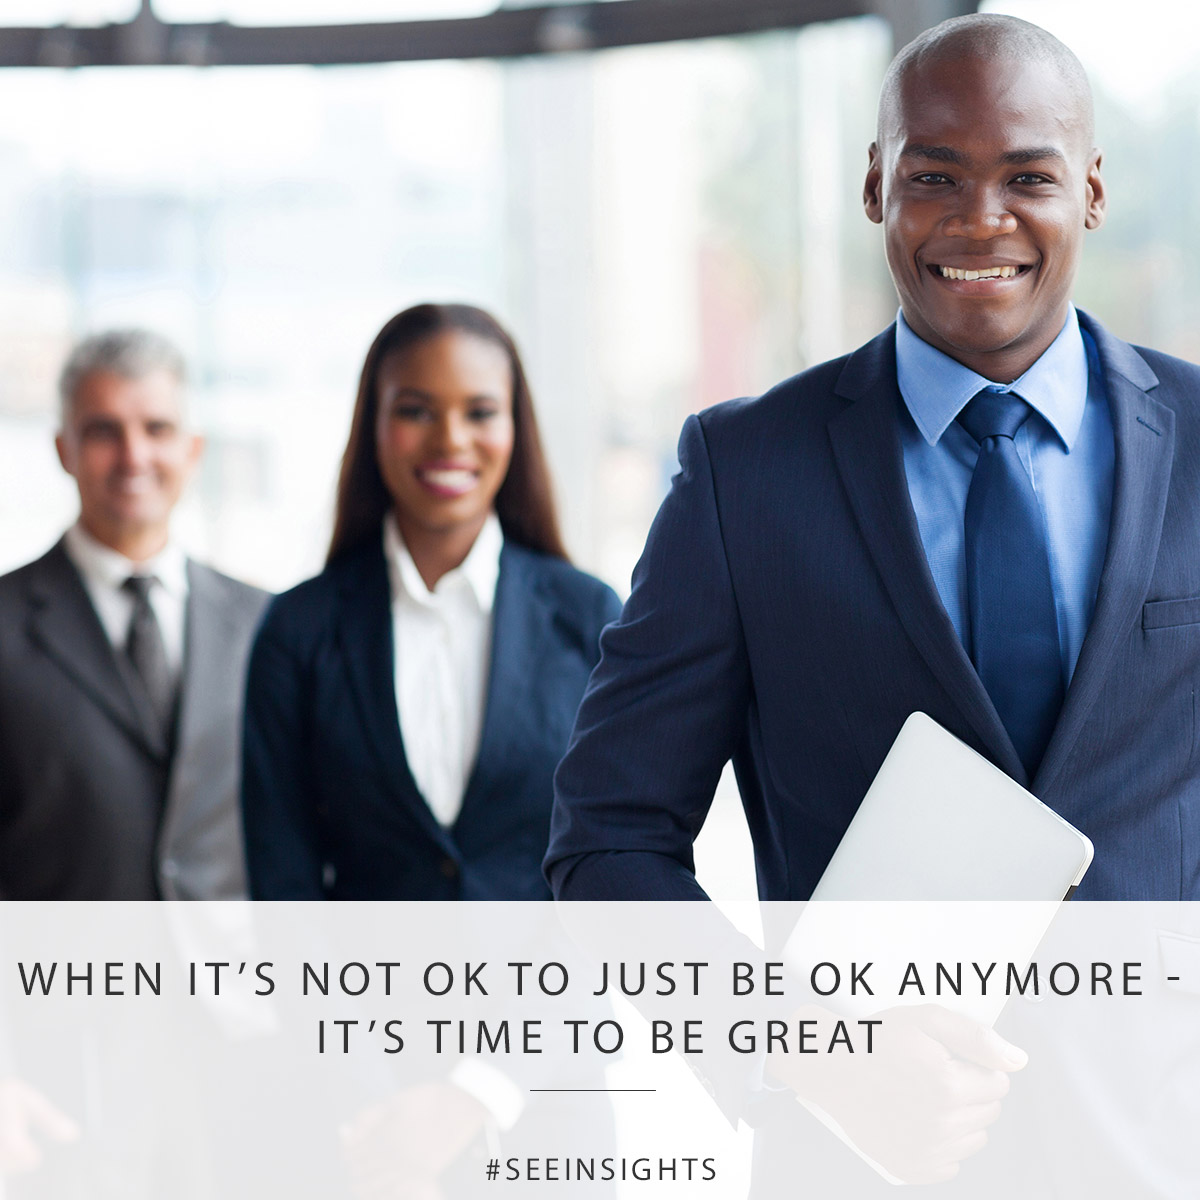 When It's Not OK to Just Be OK Anymore – It's Time to be Great